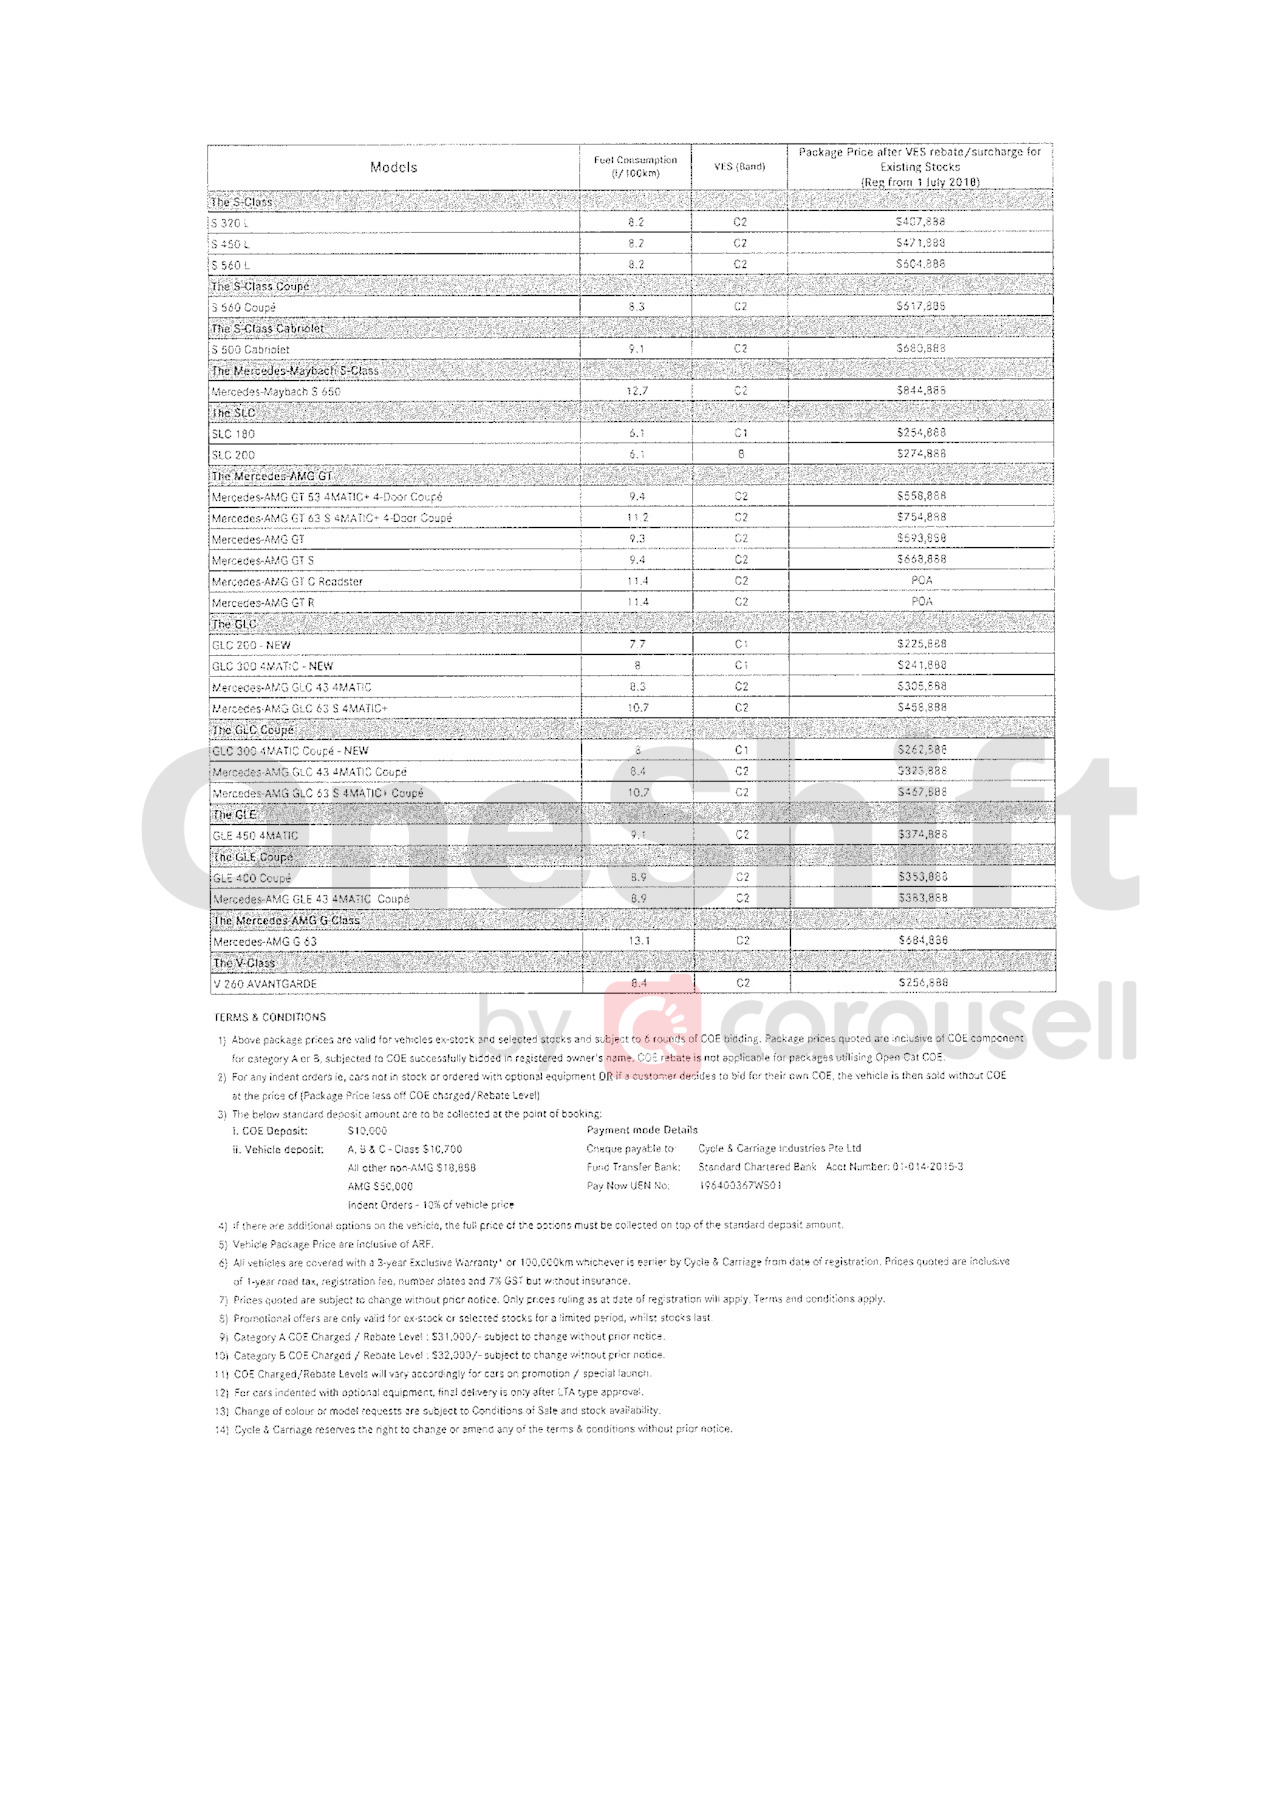 mercedes-benz Price List 1-10-2020 Page 2